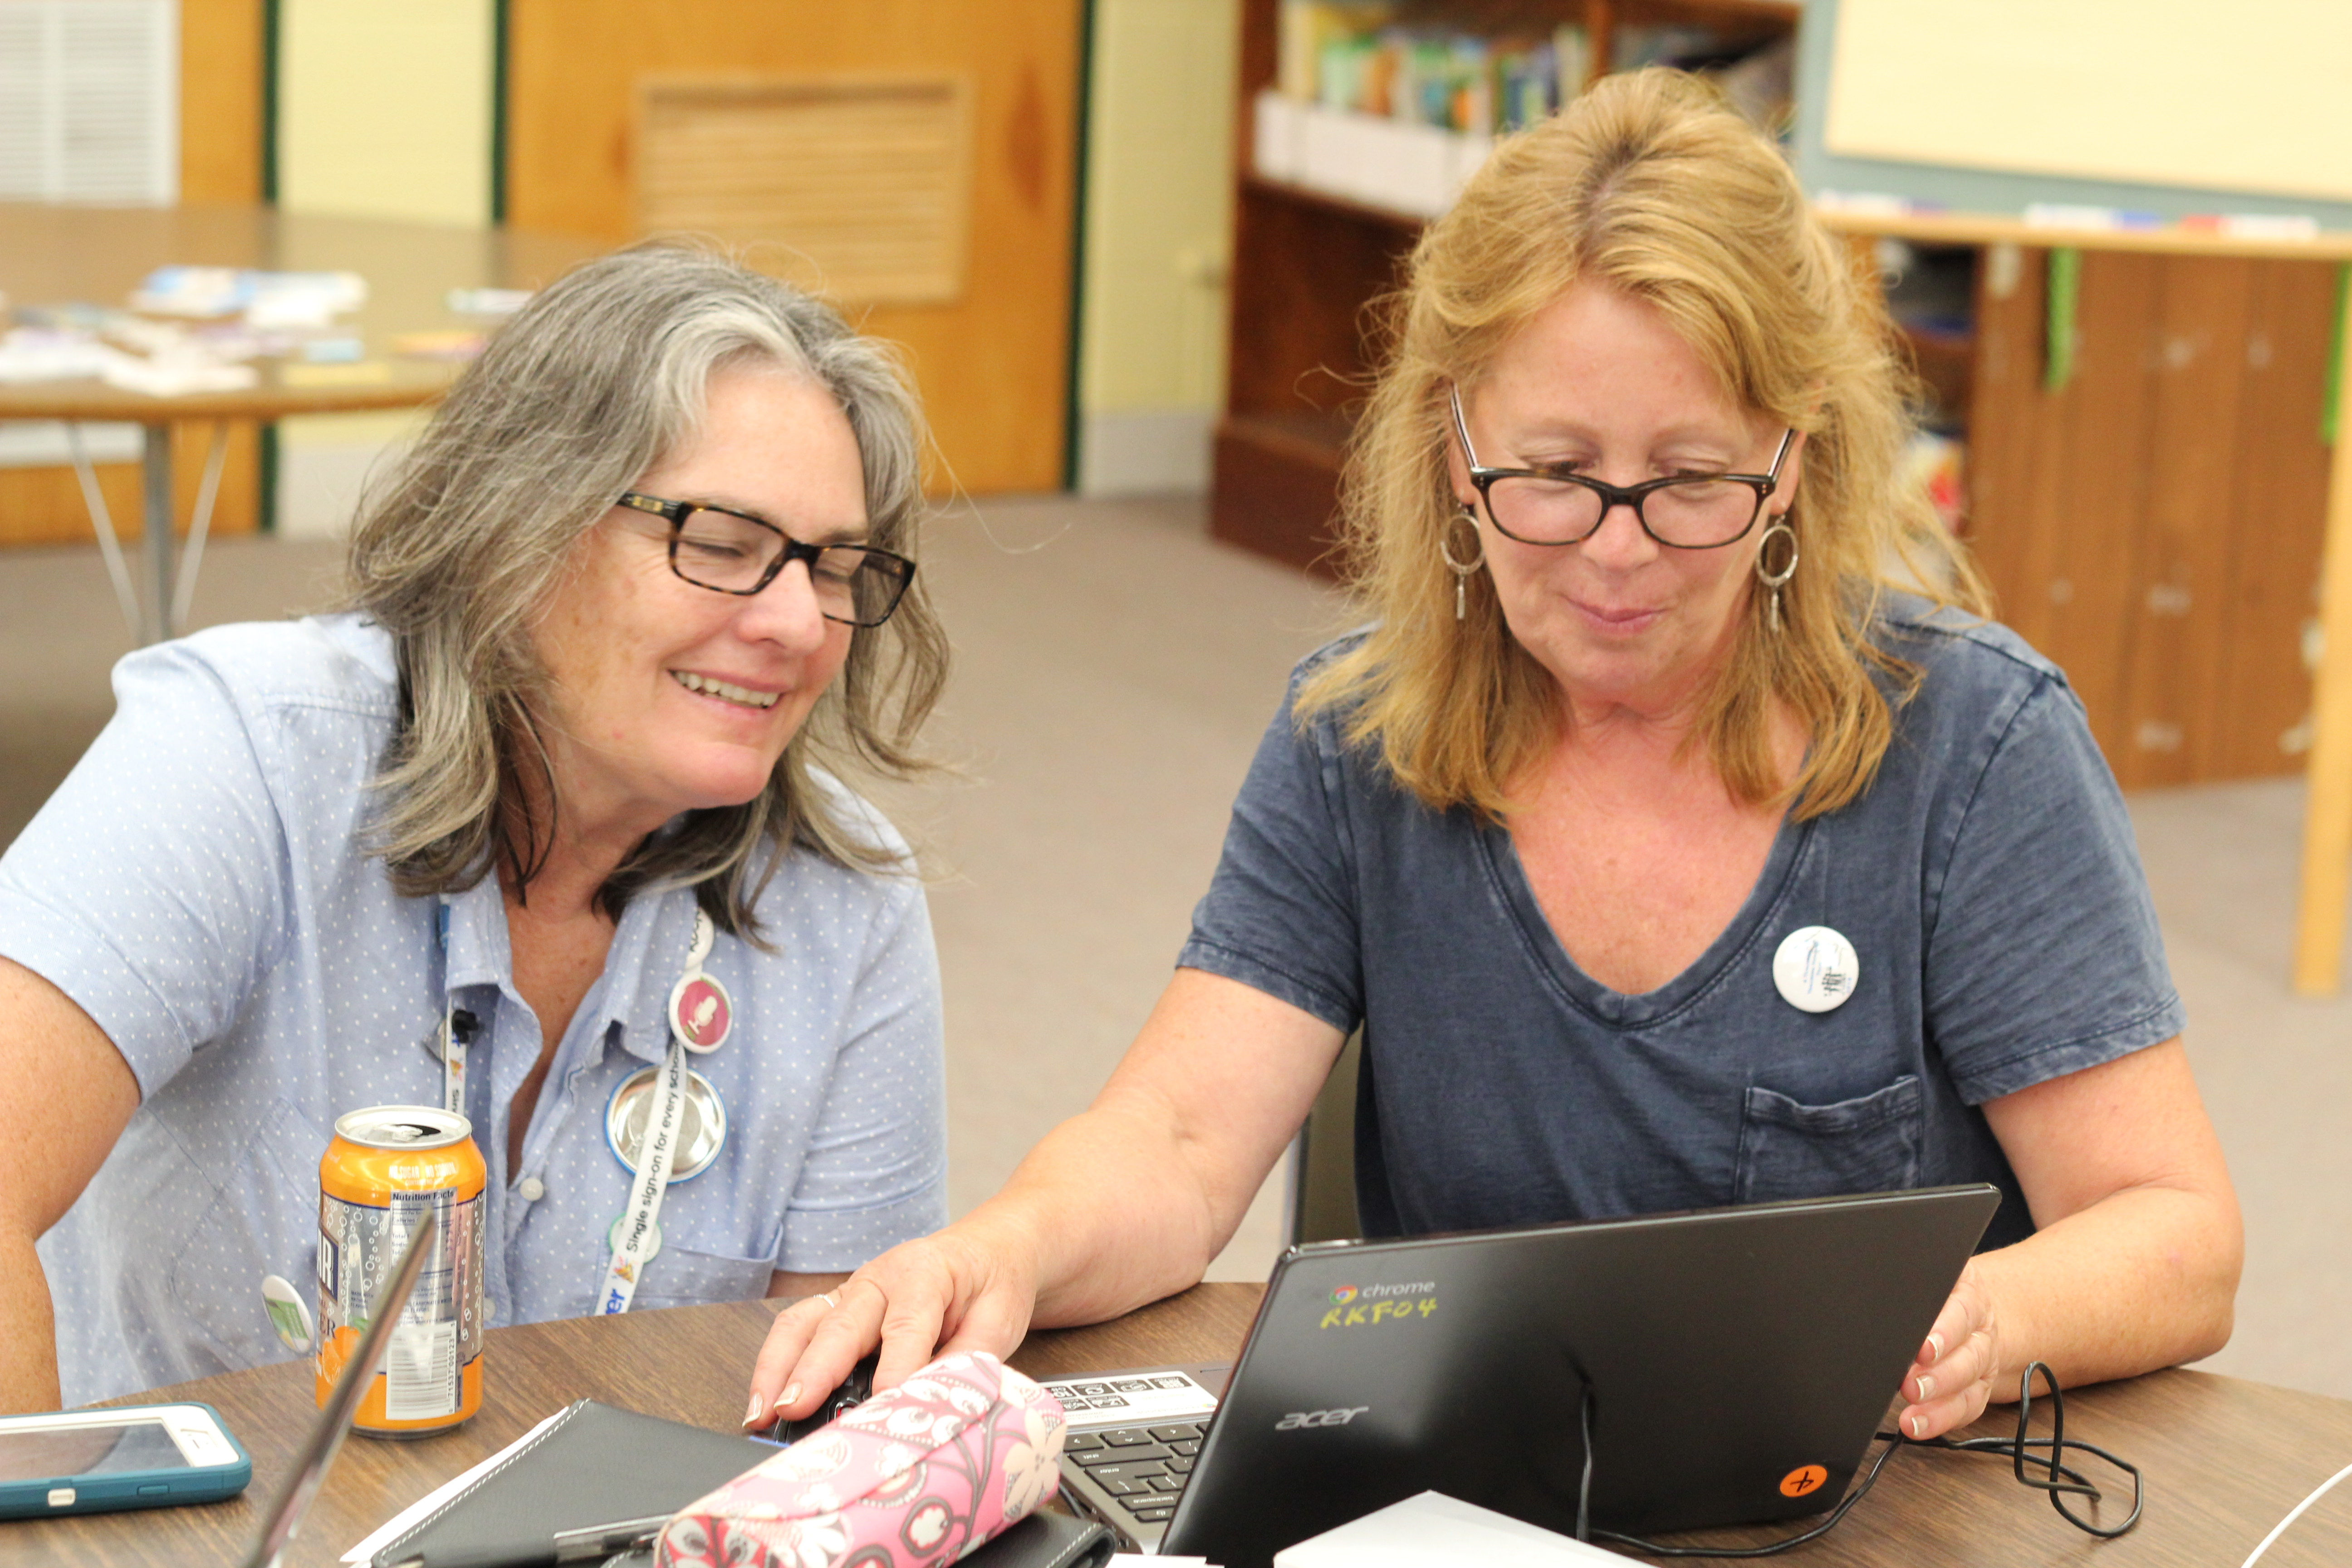 Two teachers working on a computer